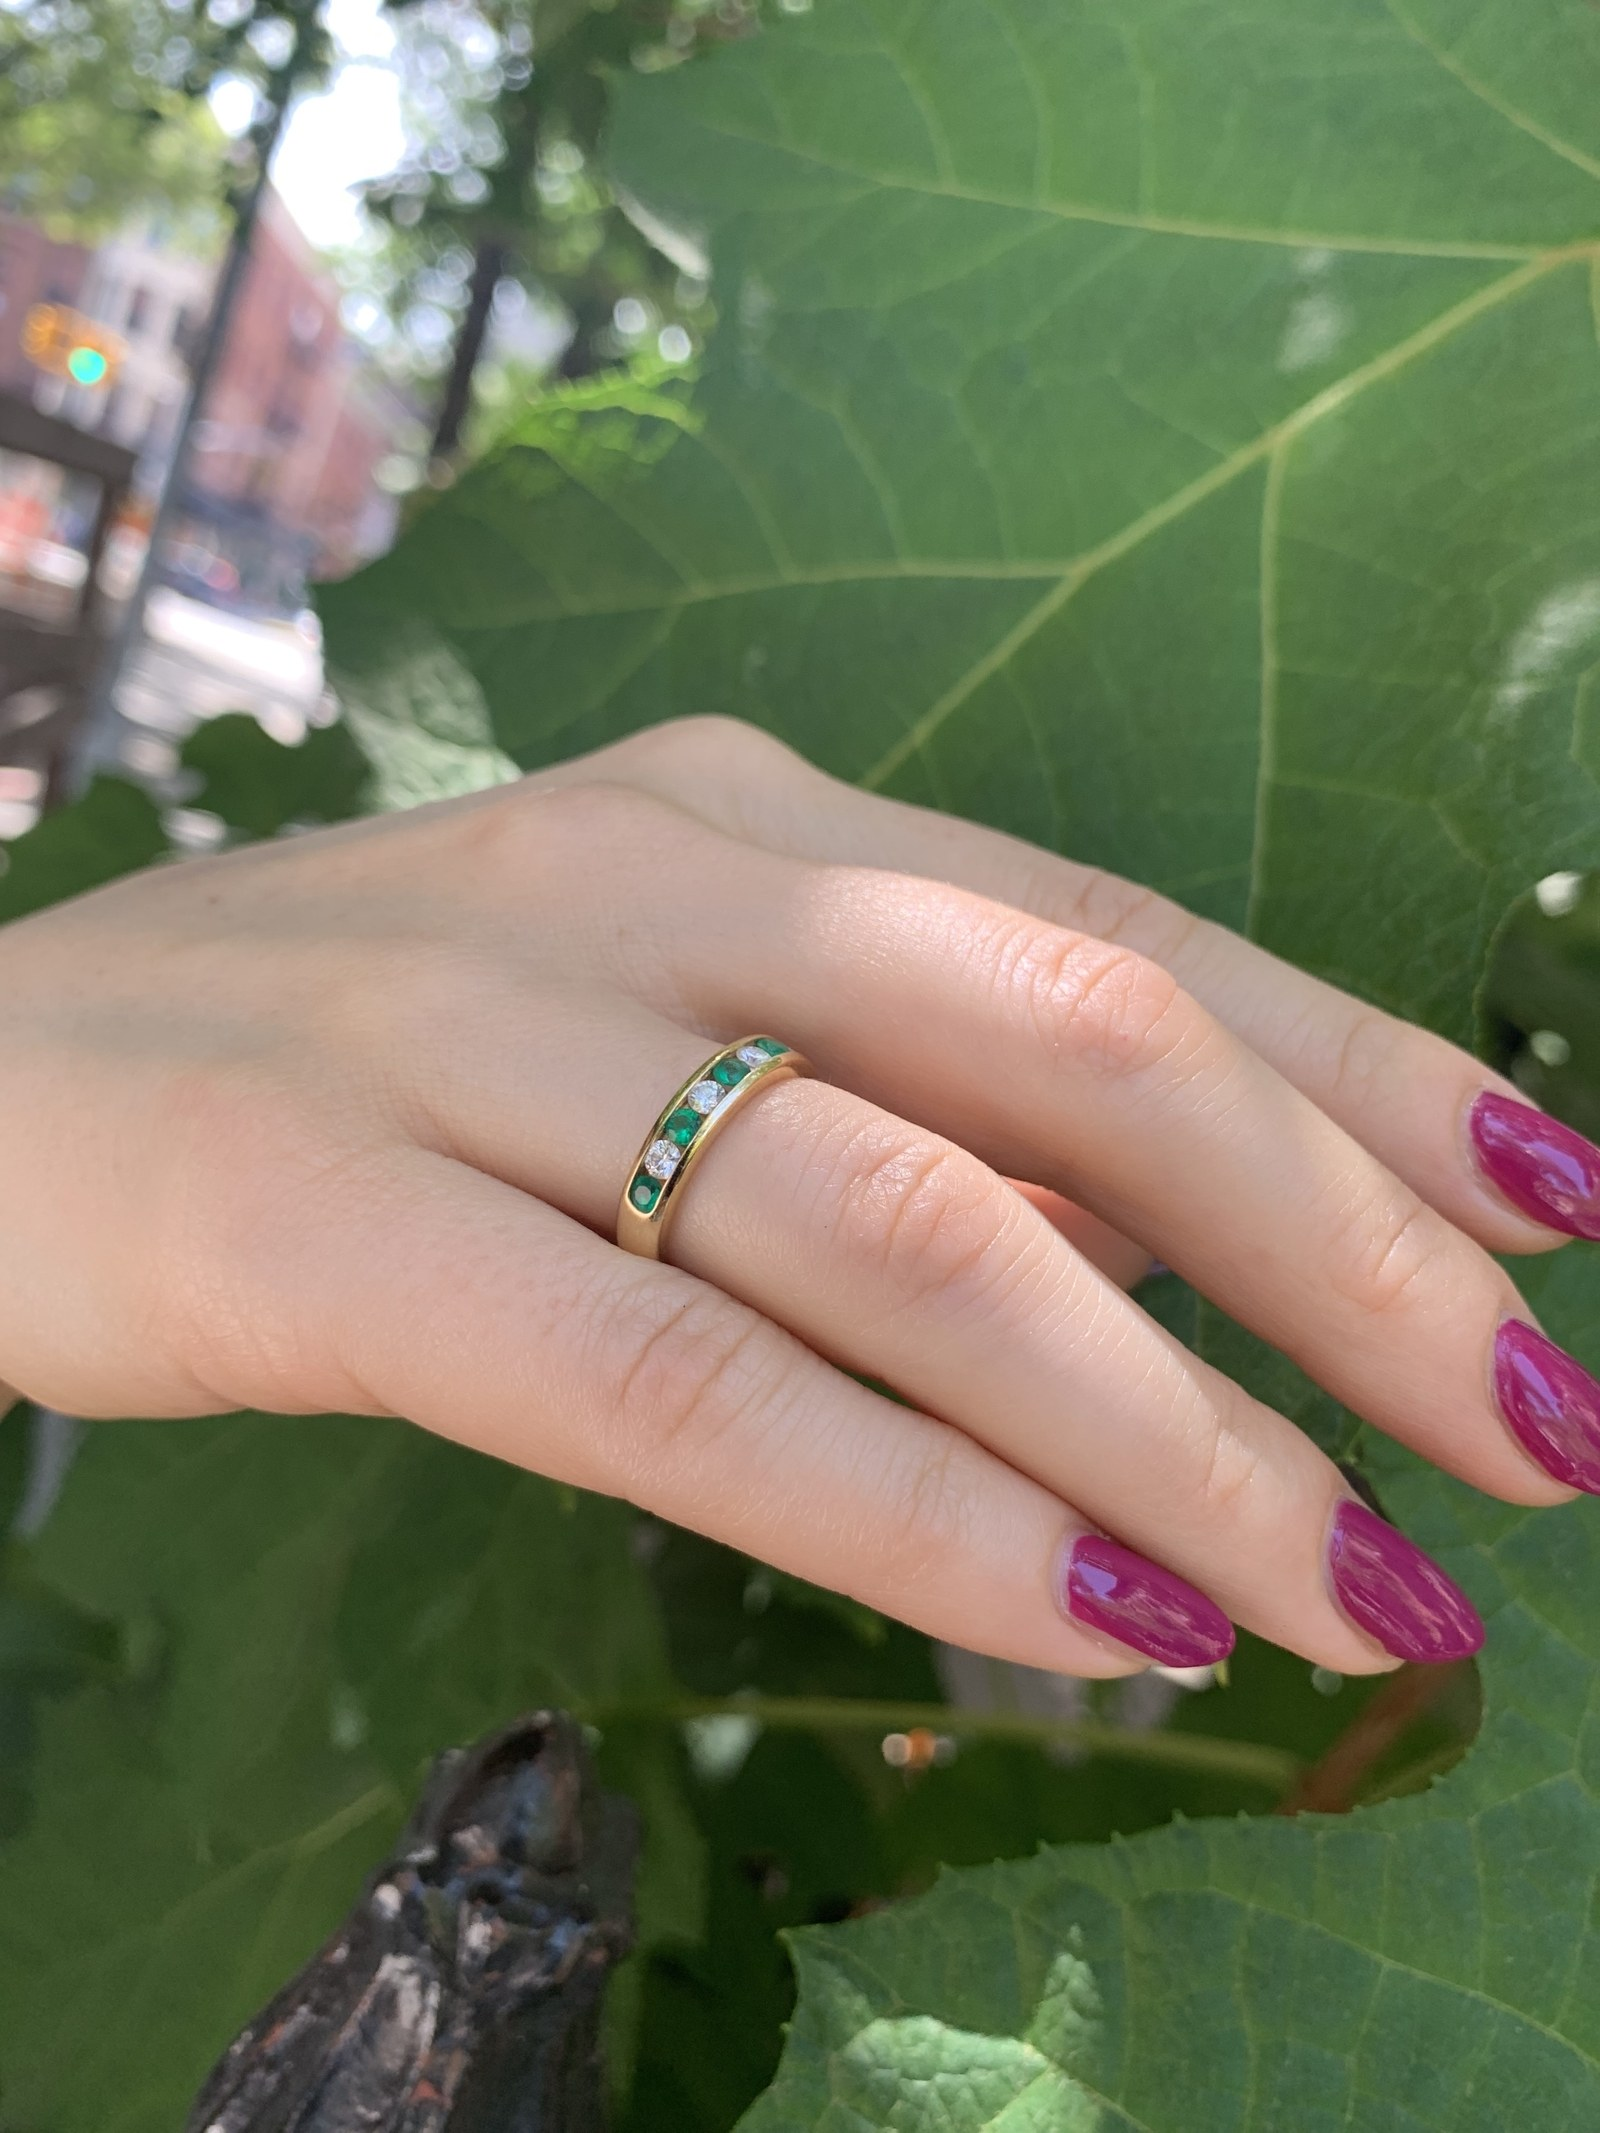 Woman's hand with diamond and emerald ring.